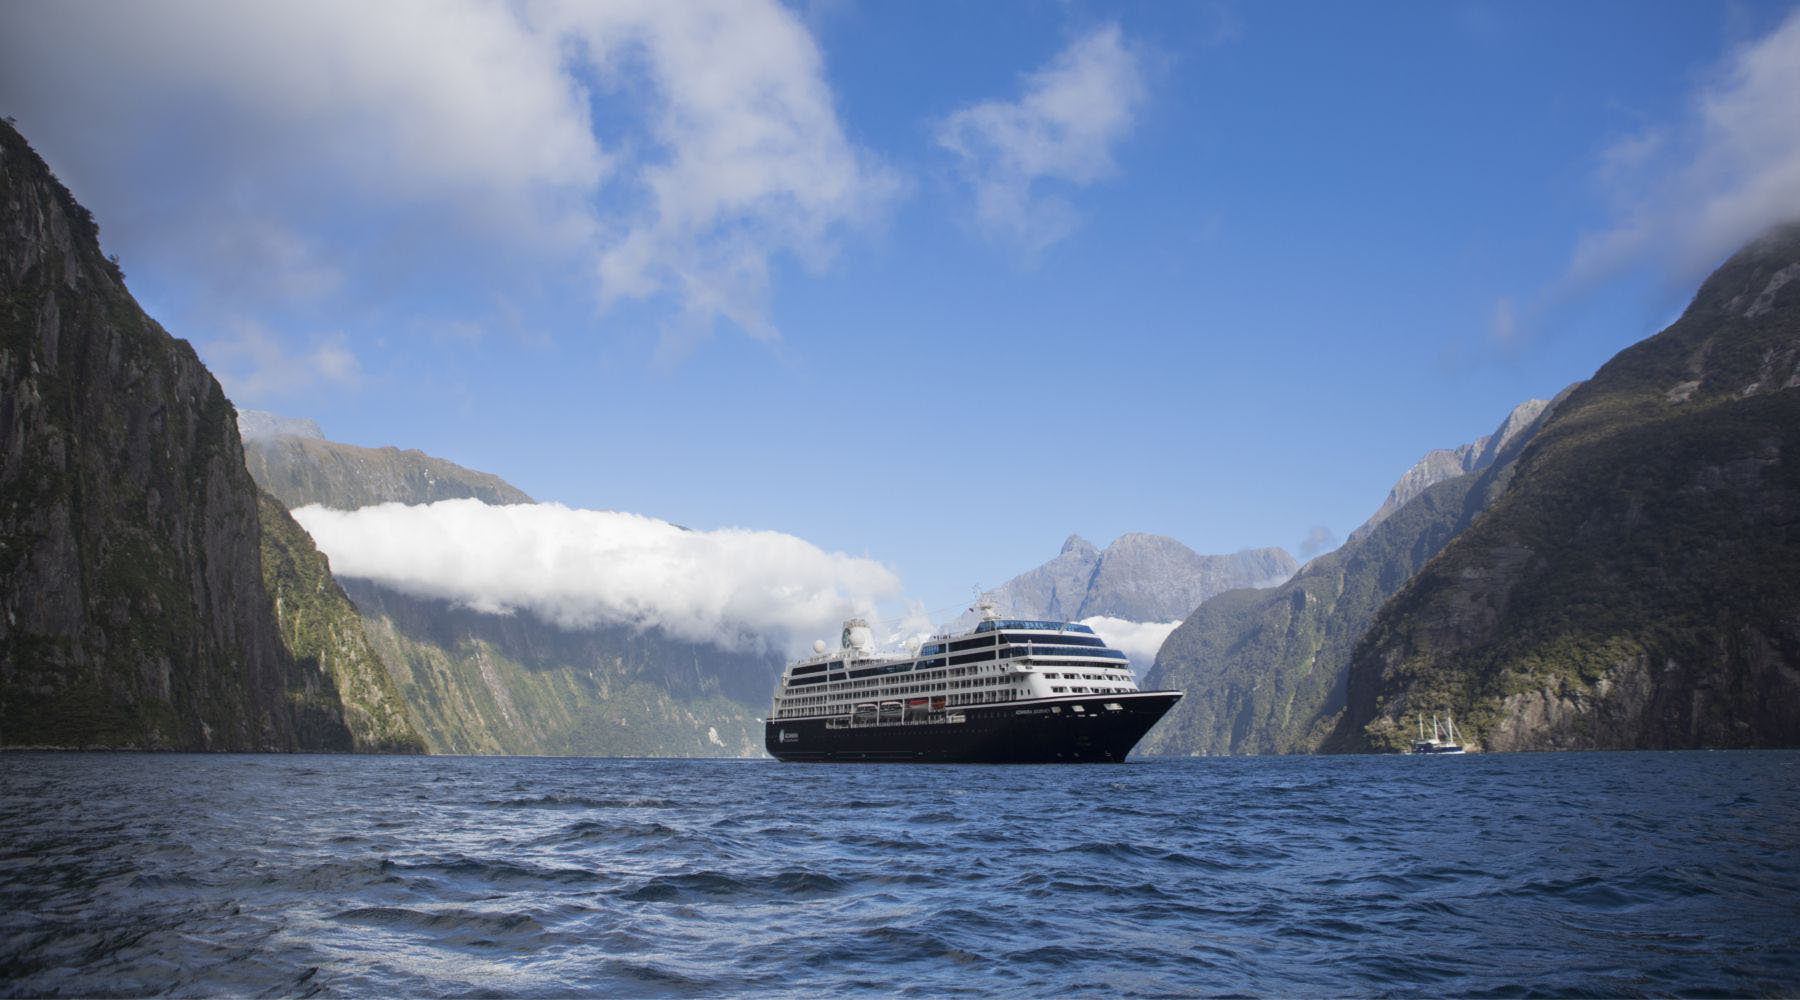 LEADING PUBLIC HEALTH EXPERTS TO OVERSEE DEVELOPMENT OF ENHANCED CRUISE LINE HEALTH AND SAFETY STANDARDS